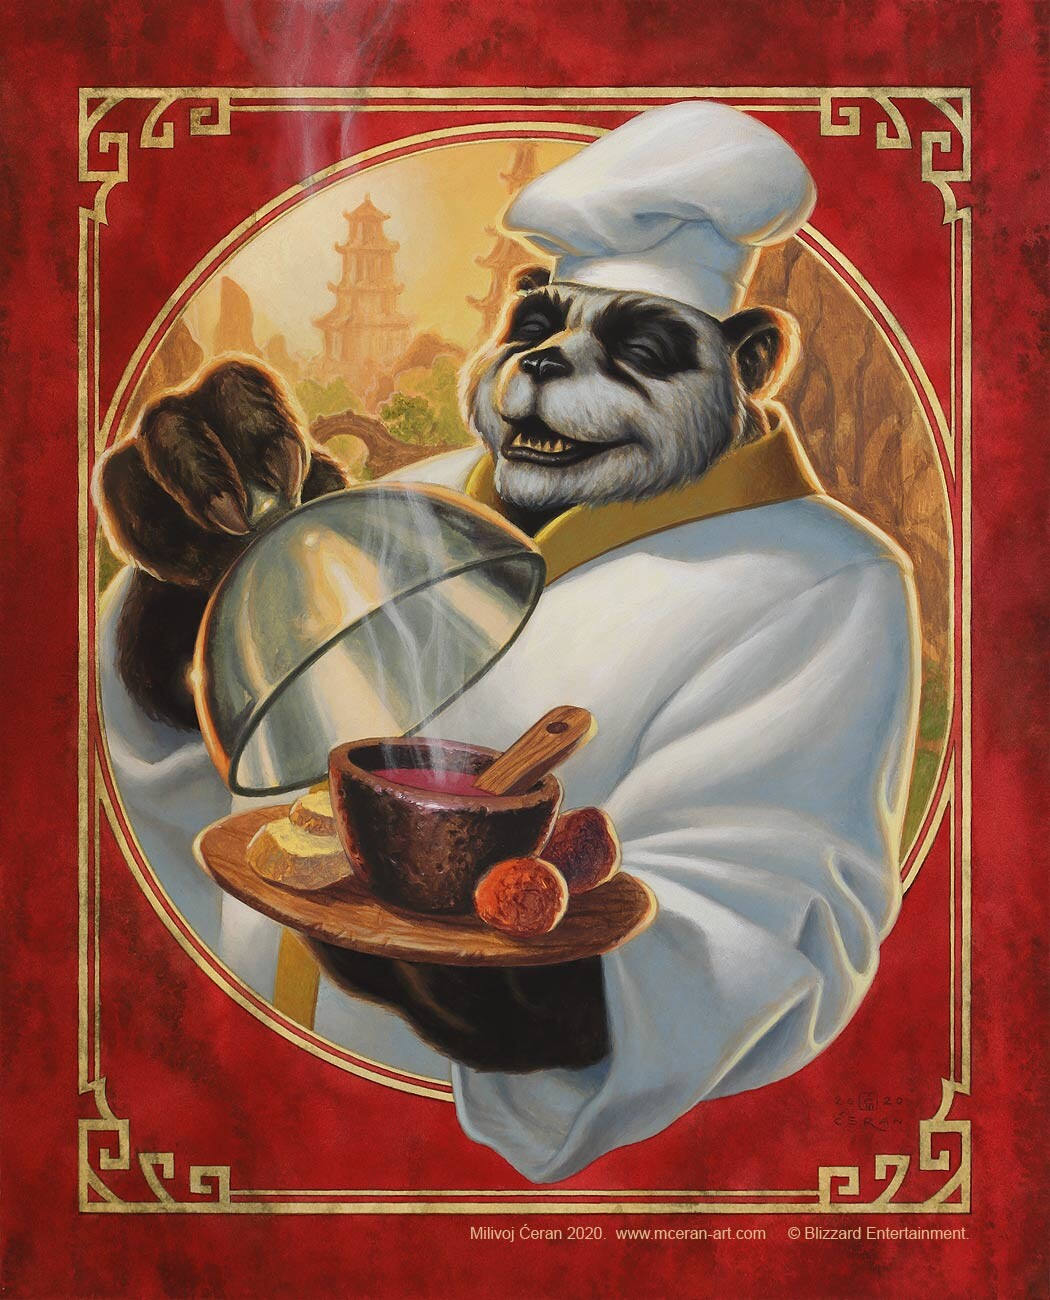 """""""Nomi Chef"""", Milivoj Ćeran 2020. - acrylic and airbrush on paper - 40 x 32 cm (15,7 x 12,6 inches) - full page illustration (intro page) for the book """"World of Warcraft Cookbook: New Flavors of Azeroth"""", Insight Editions - © Blizzard Entertainment - Art D"""